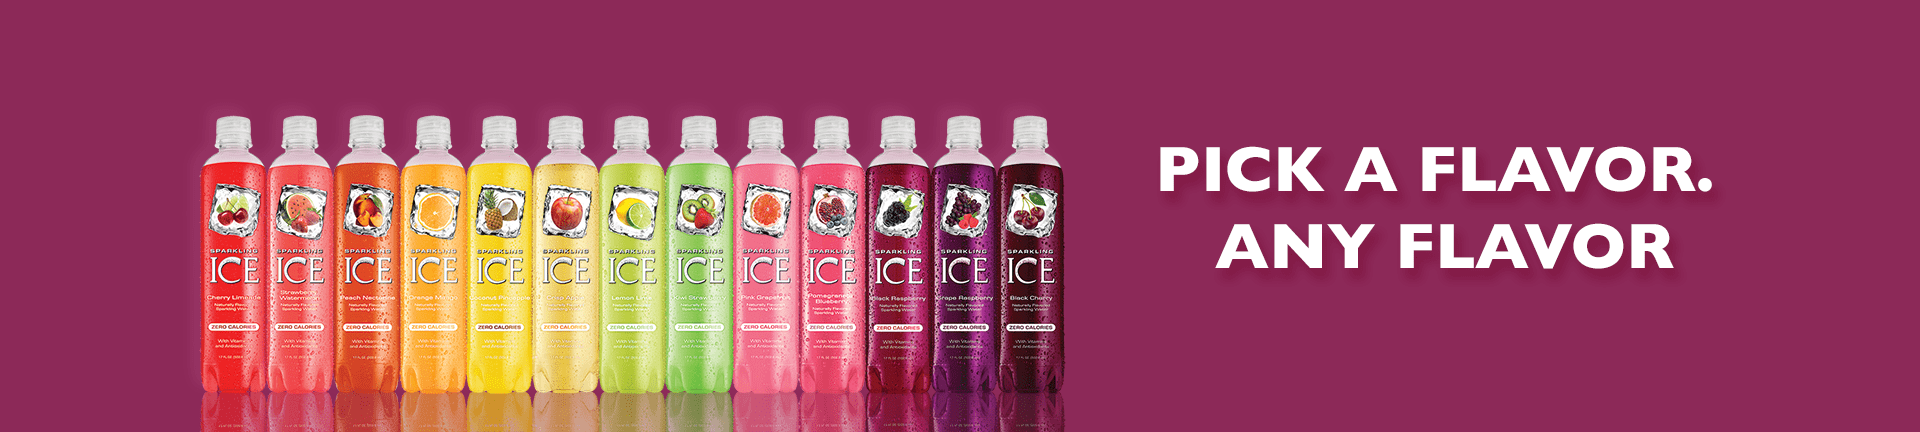 Sparkling Ice bottle lineup